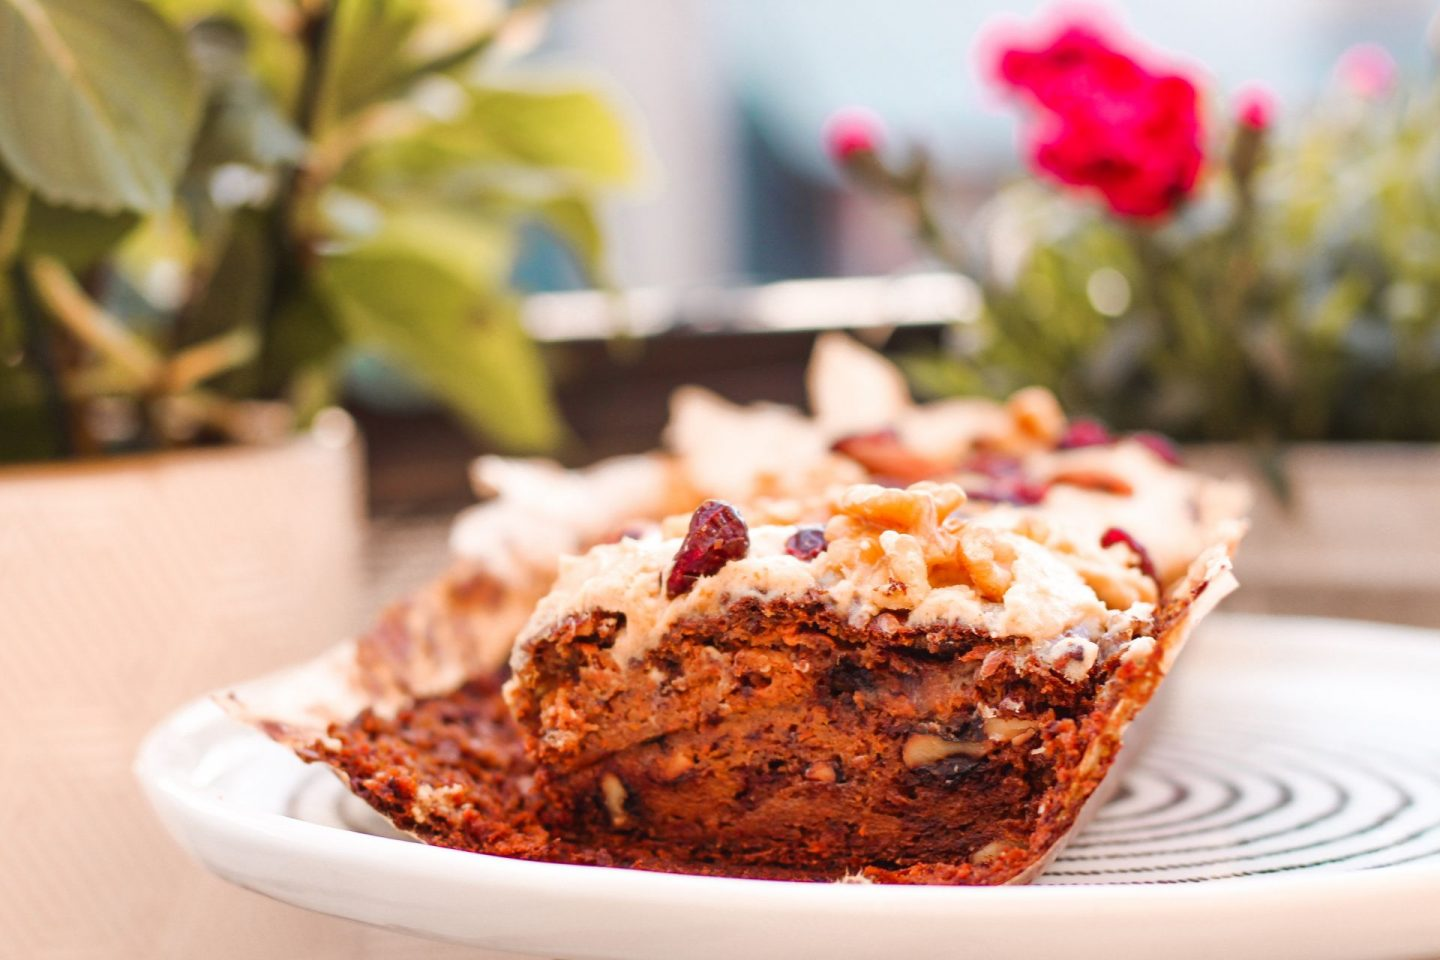 low glycemic index carrot cake